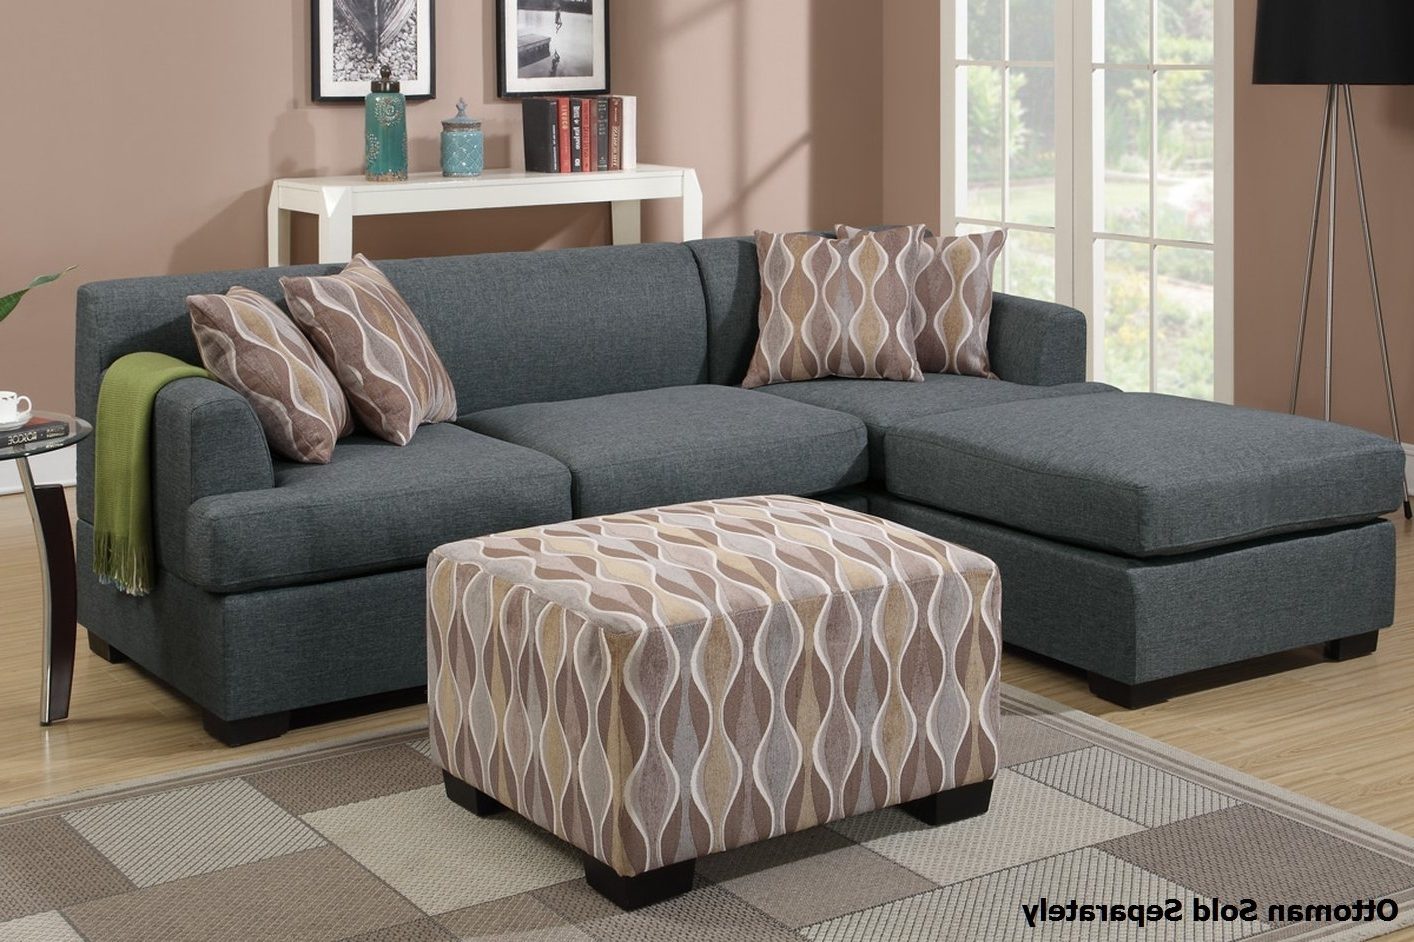 Fashionable Montreal Sectional Sofas Pertaining To Montreal Ii Grey Fabric Sectional Sofa – Steal A Sofa Furniture (View 3 of 15)